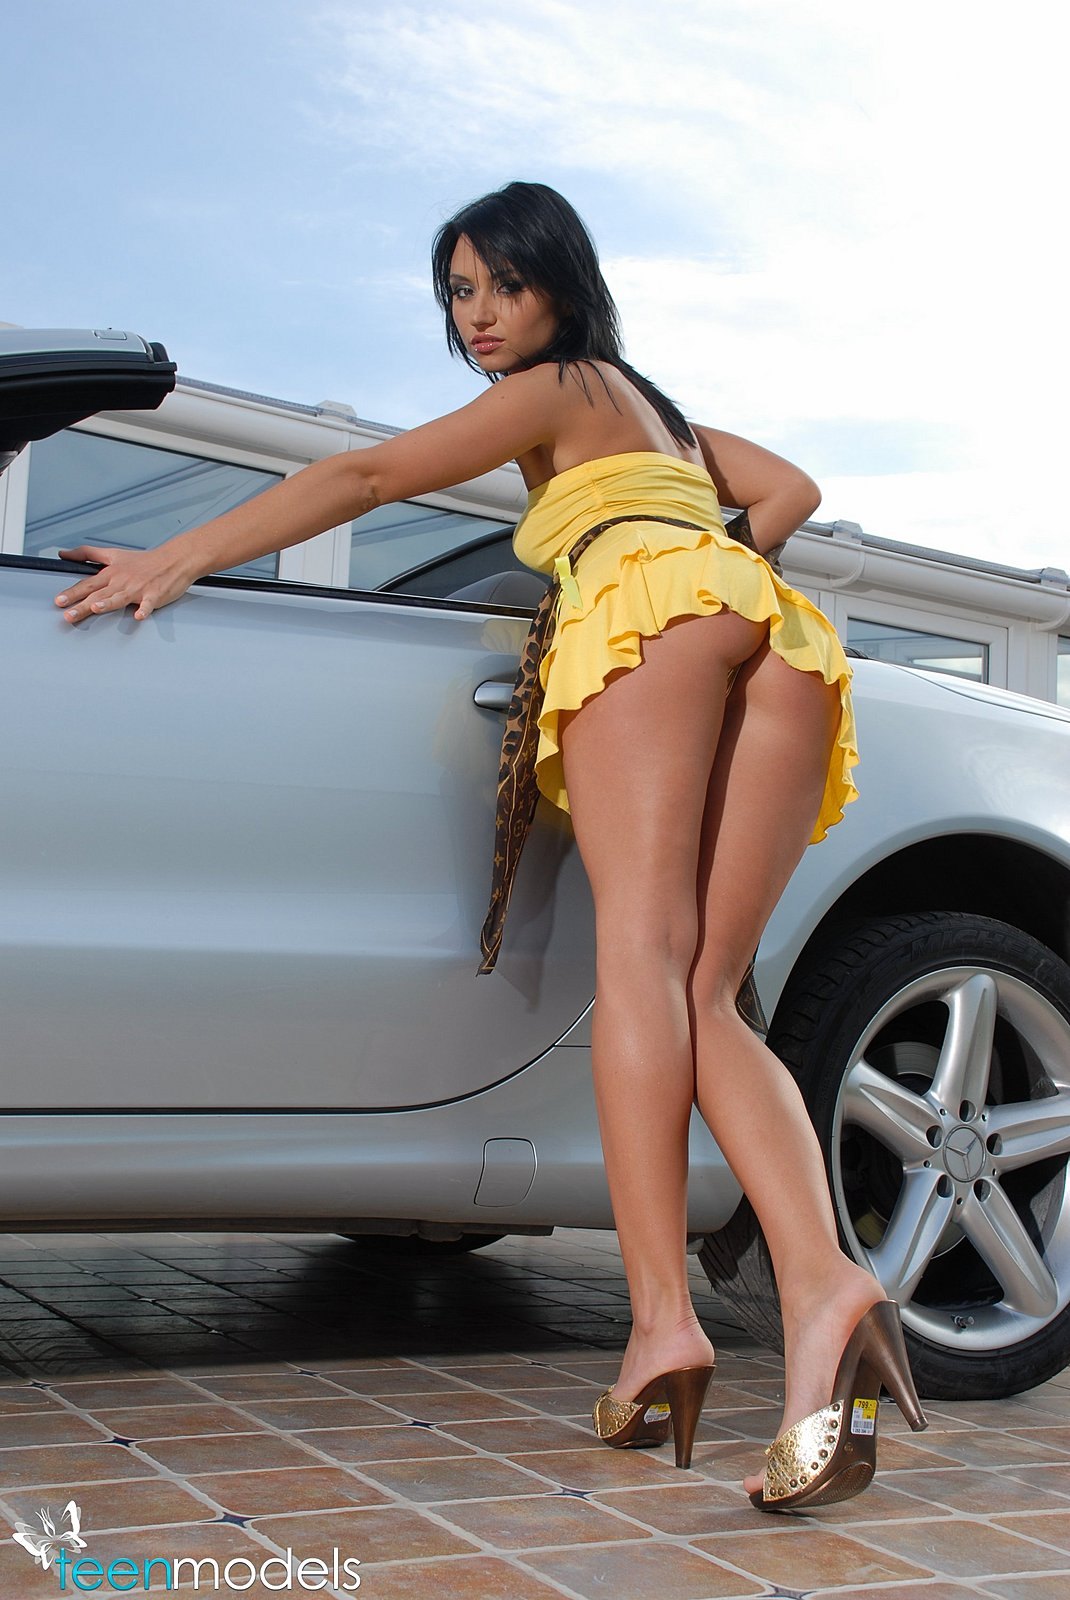 Adult picture teen world